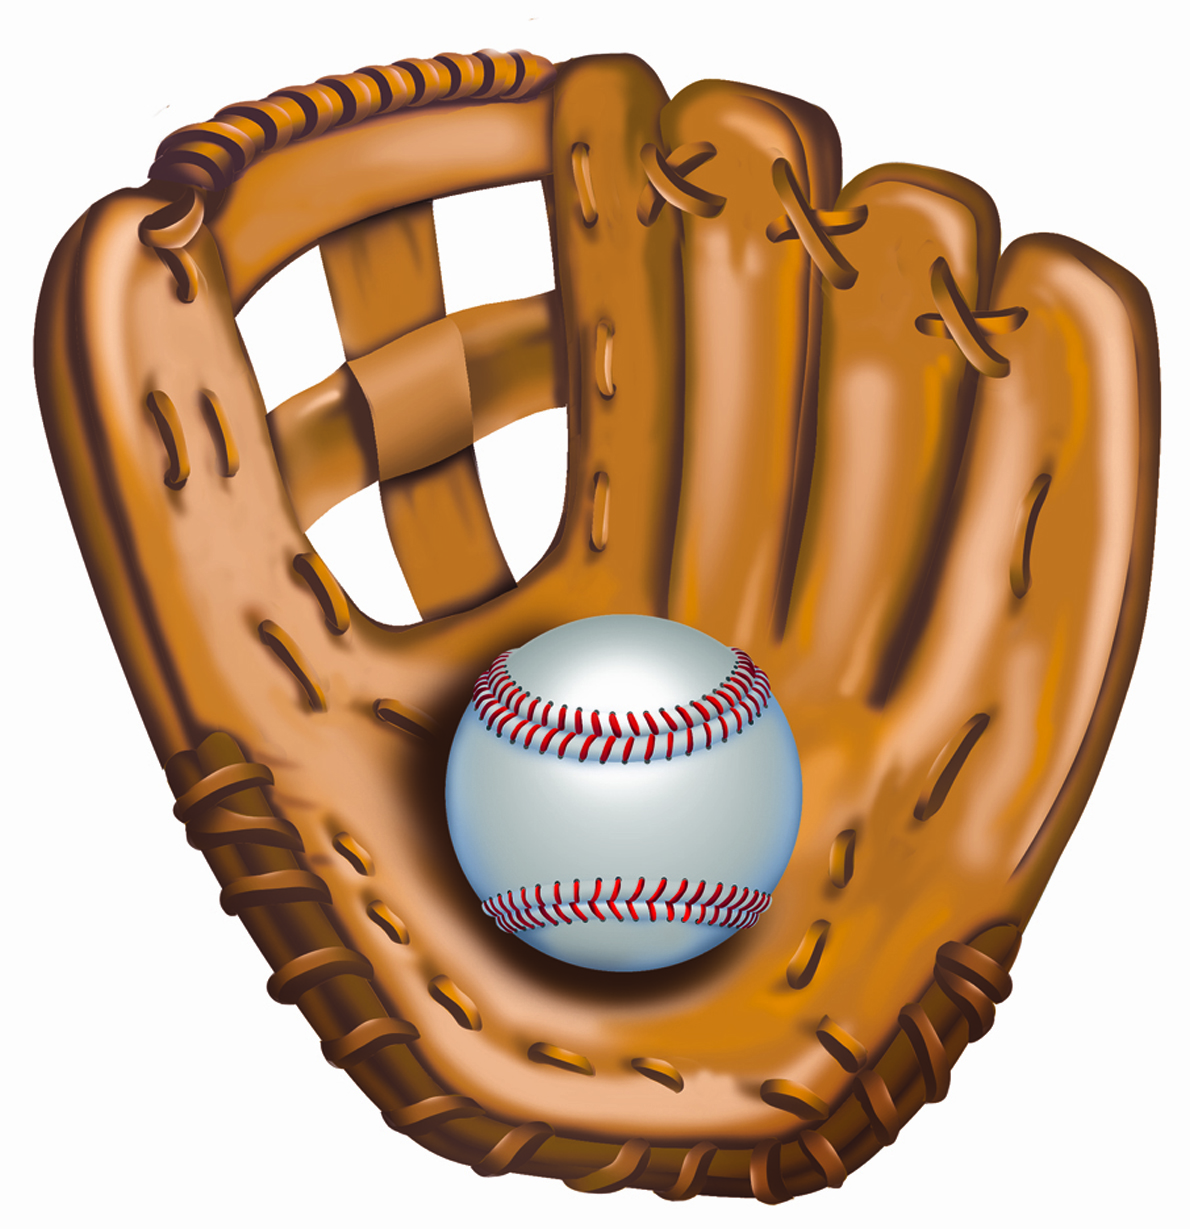 1190x1229 Baseball Bat And Glove Clipart 101 Clip Art